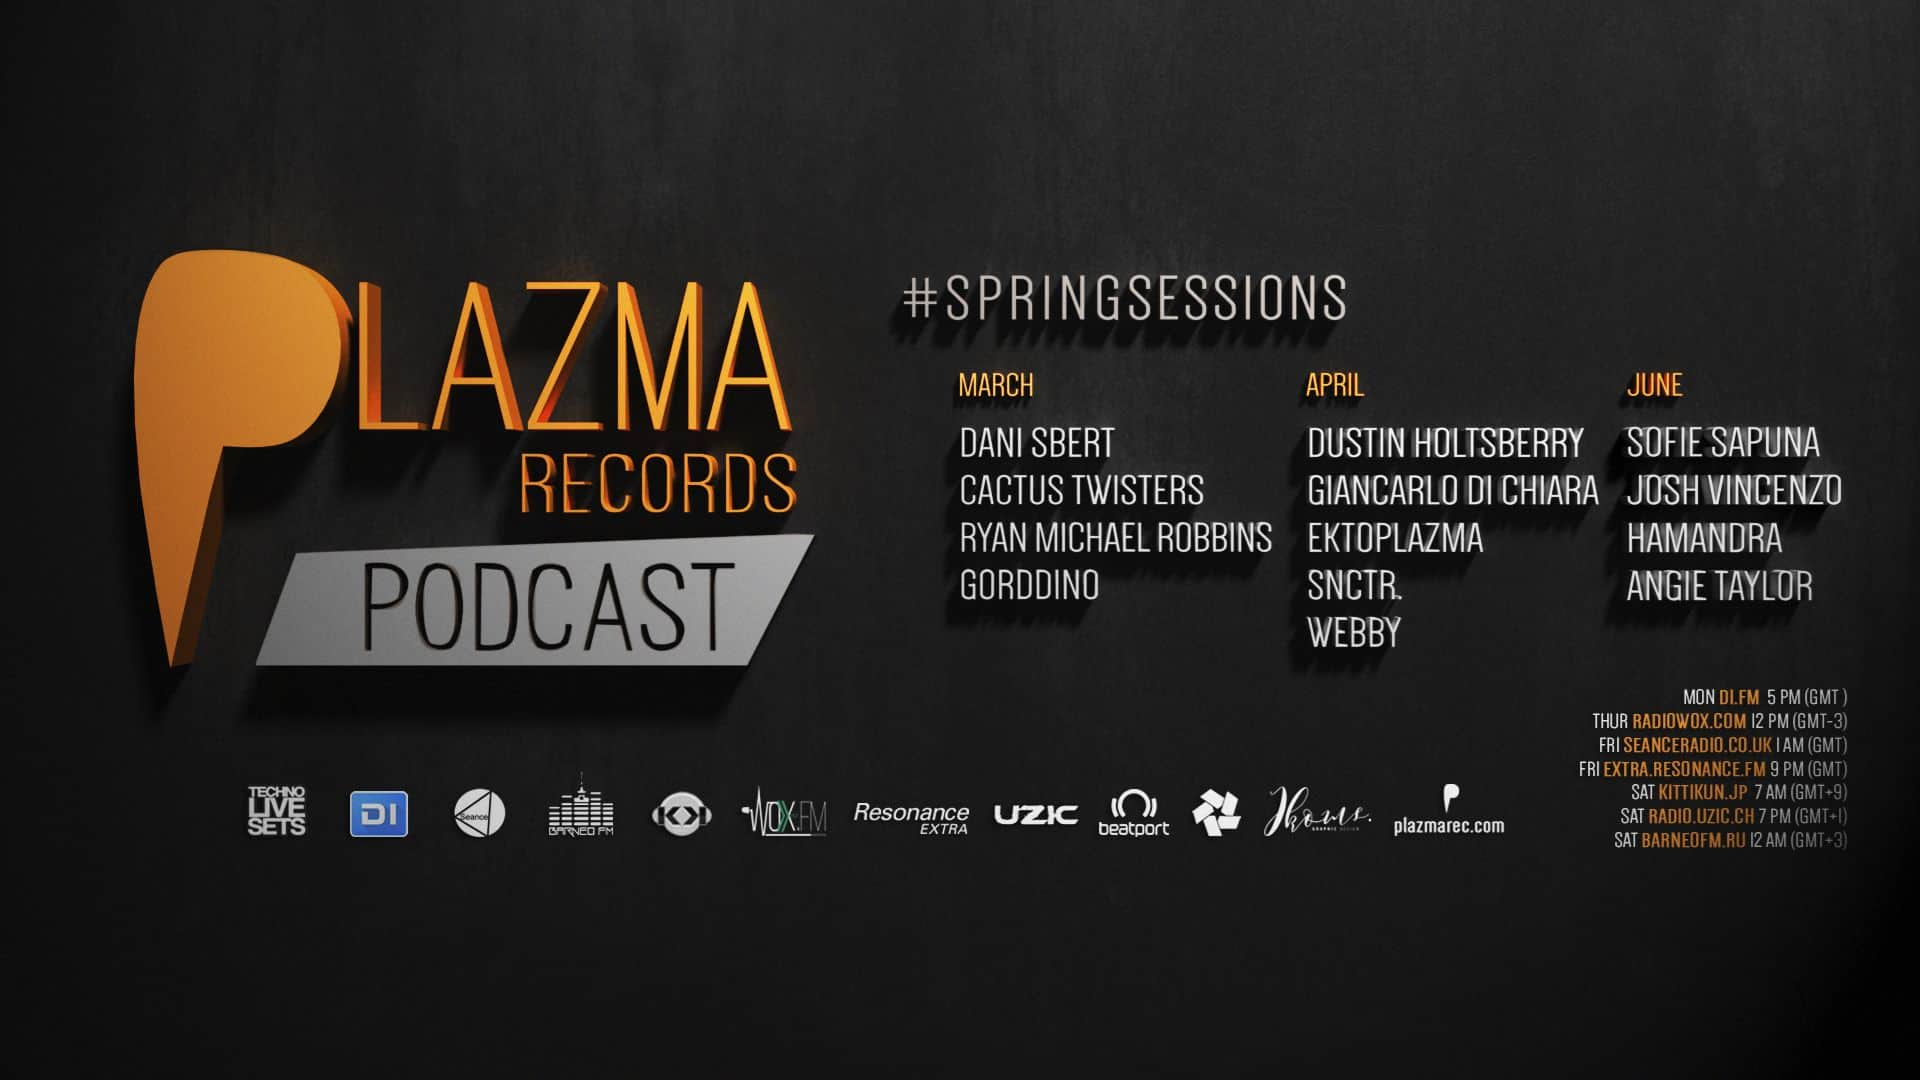 Plazma Records Podcast | Spring Sessions'18